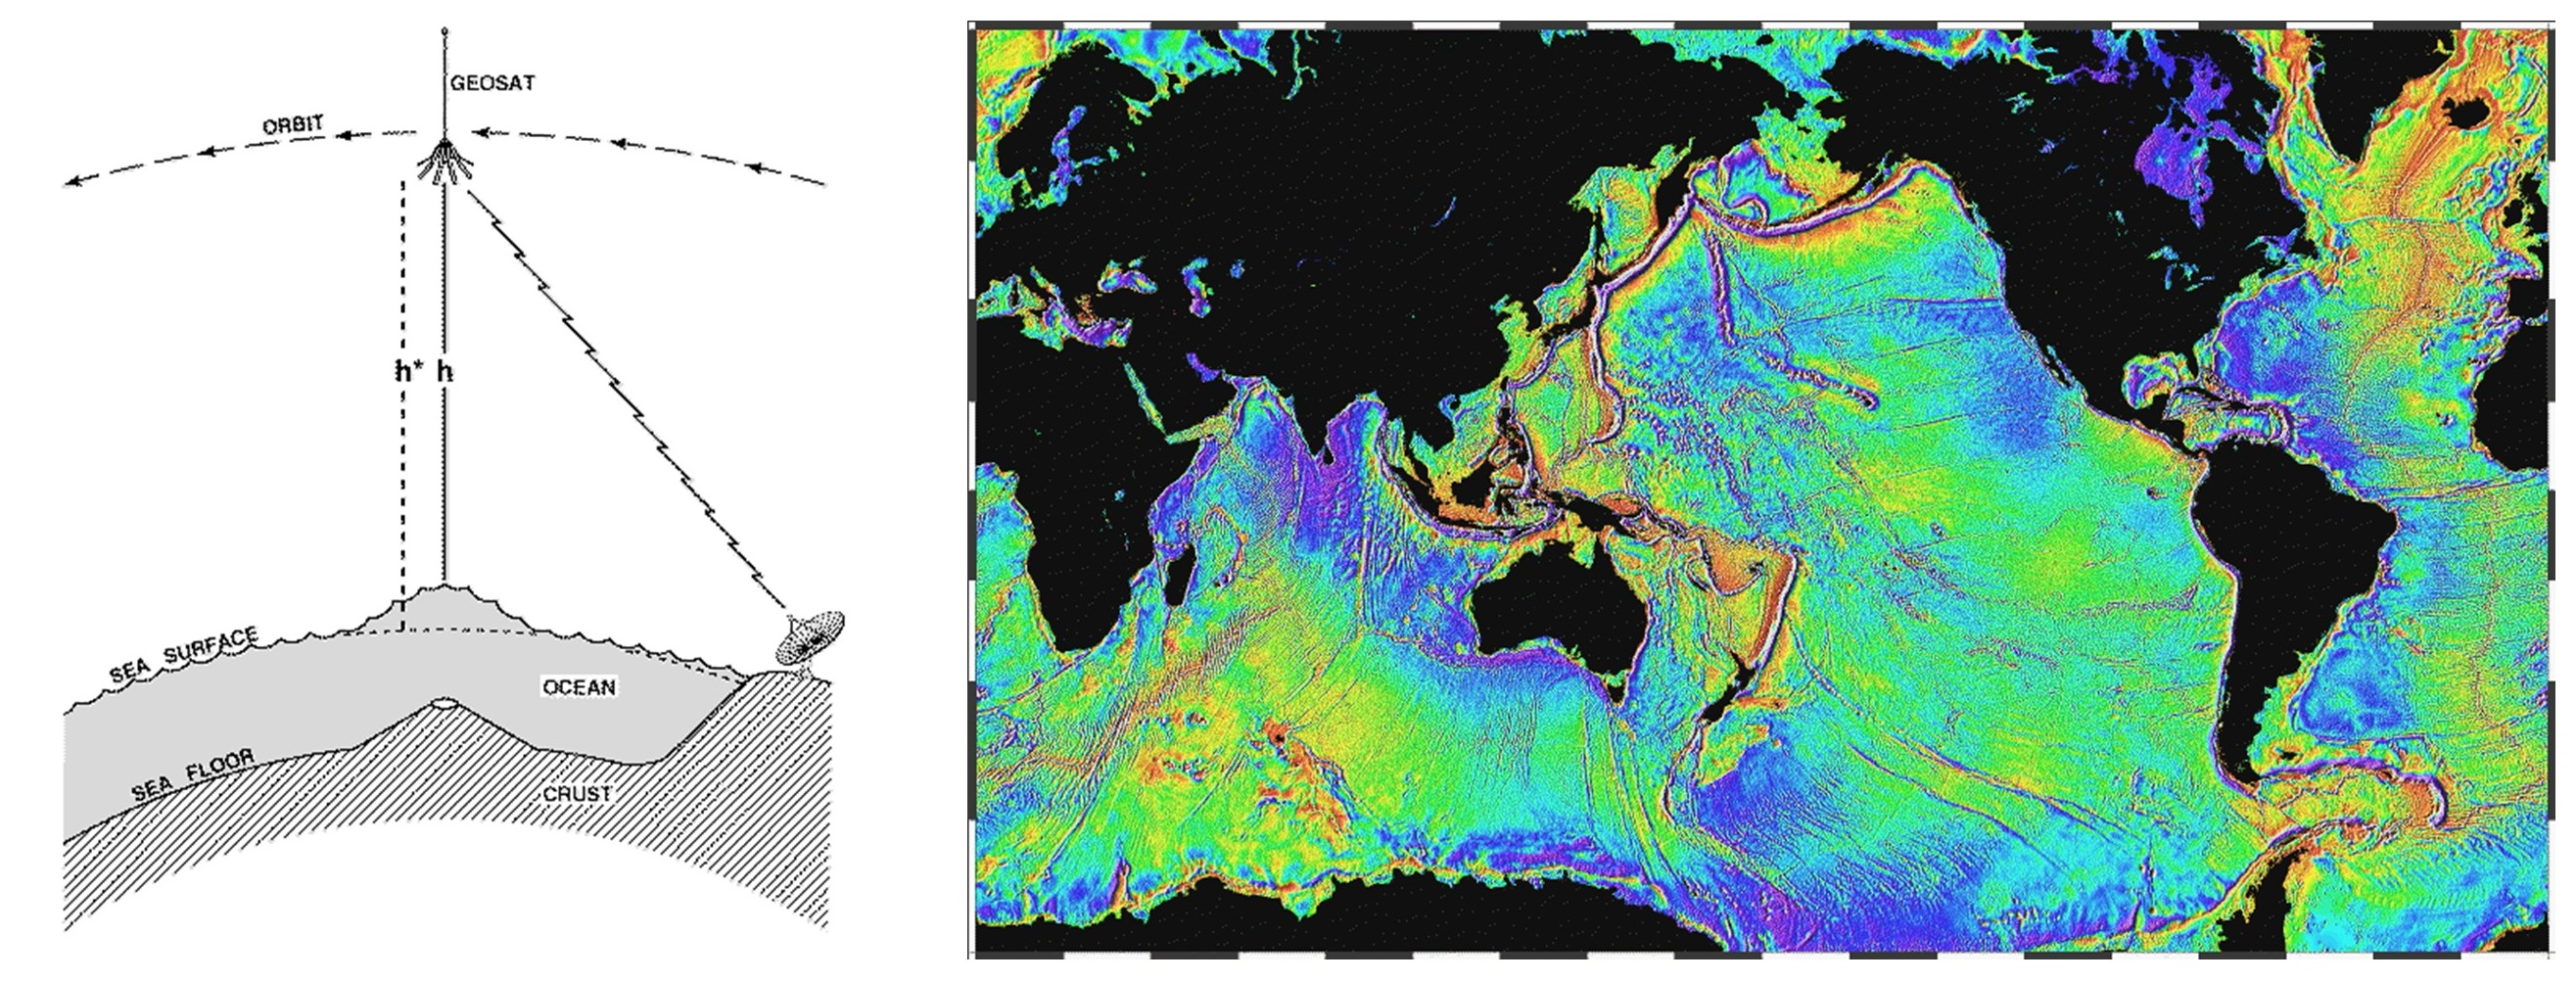 1 4 Mapping The Seafloor Introduction To Oceanography